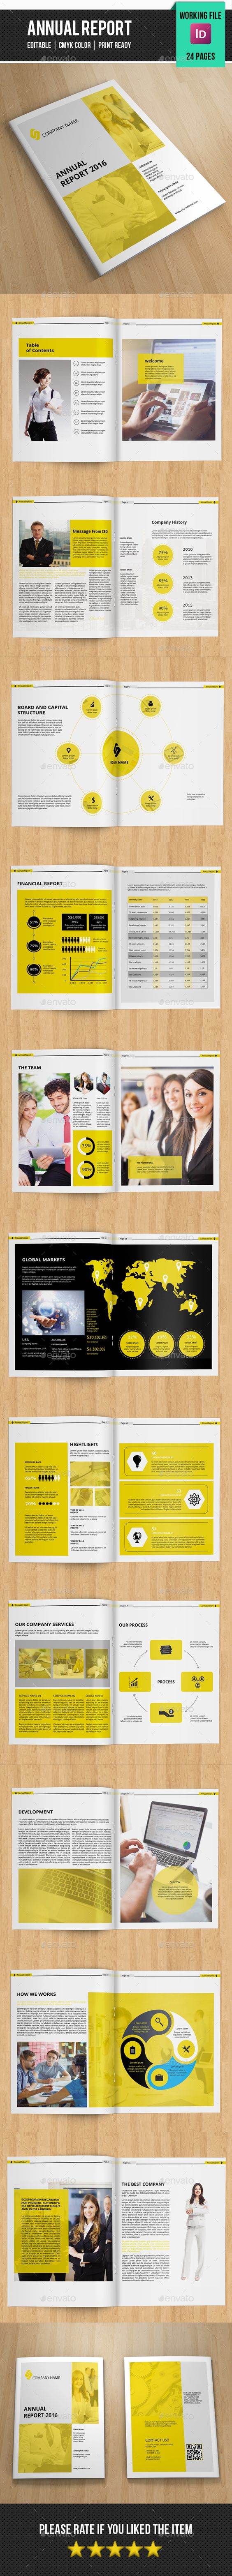 Annual Report Template InDesign INDD #design Download: http://graphicriver.net/item/annual-reportv339/14428312?ref=ksioks